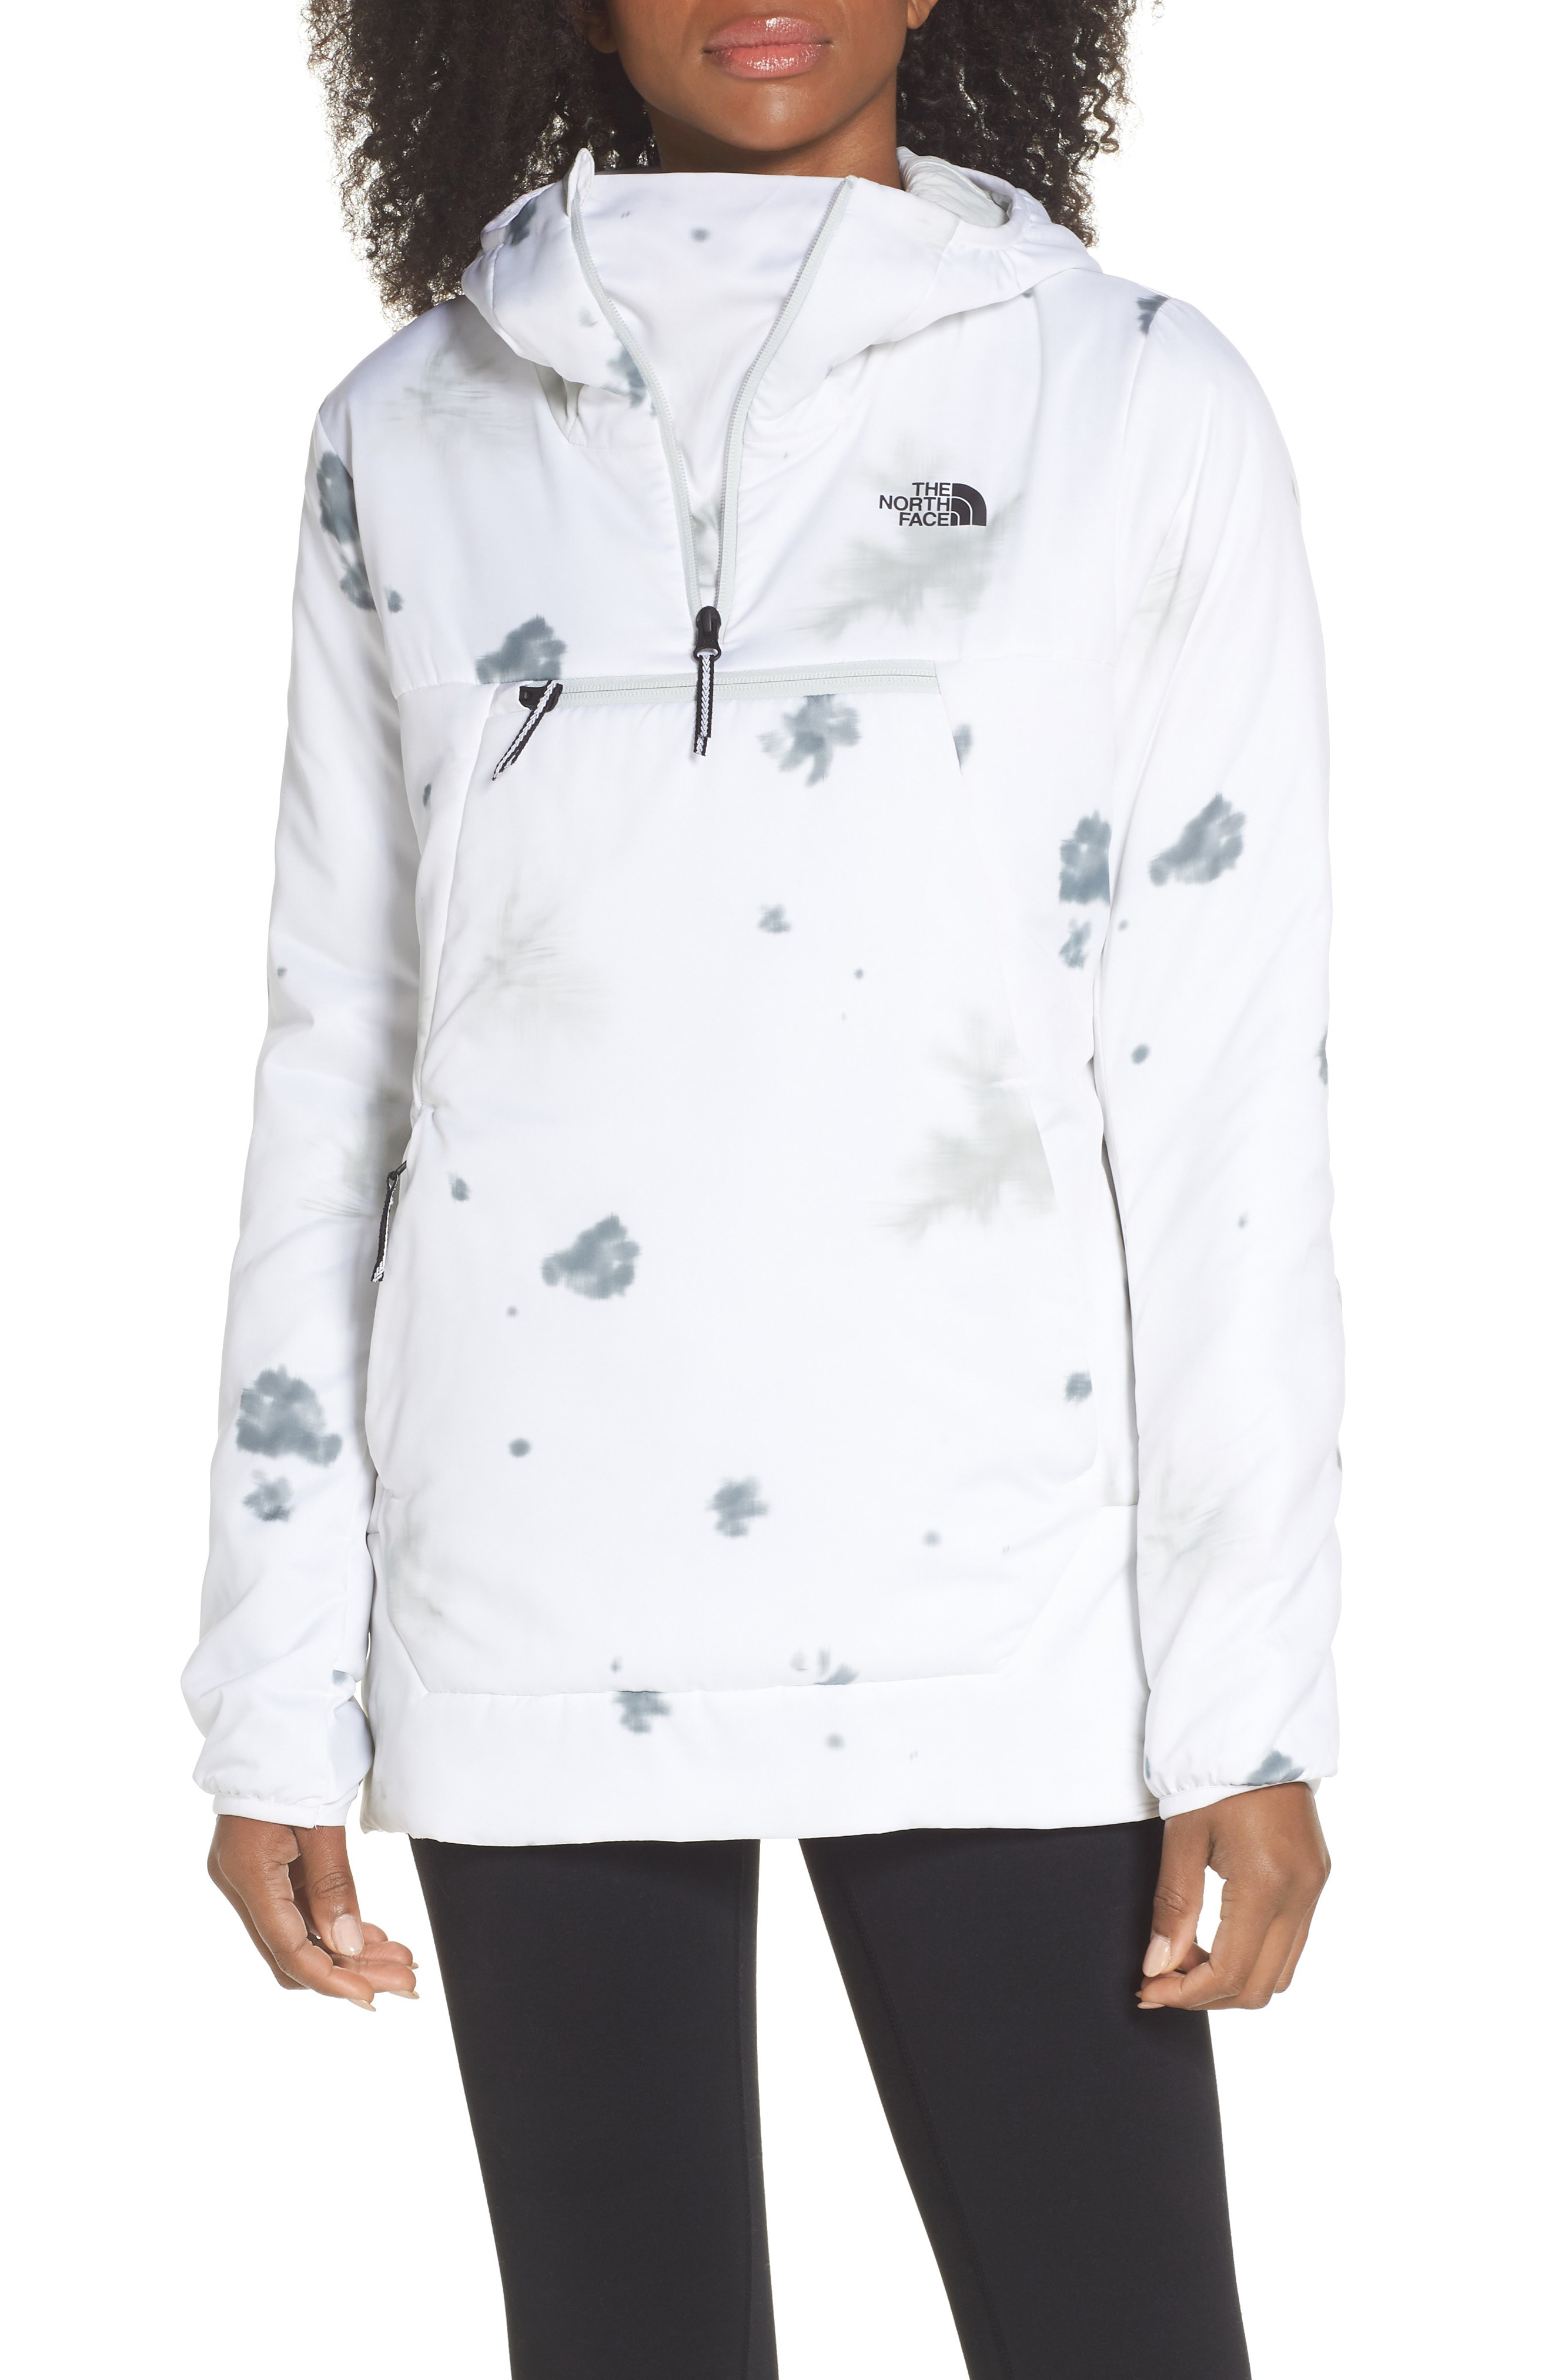 The North Face Vinny Ventrix Pullover Hoodie